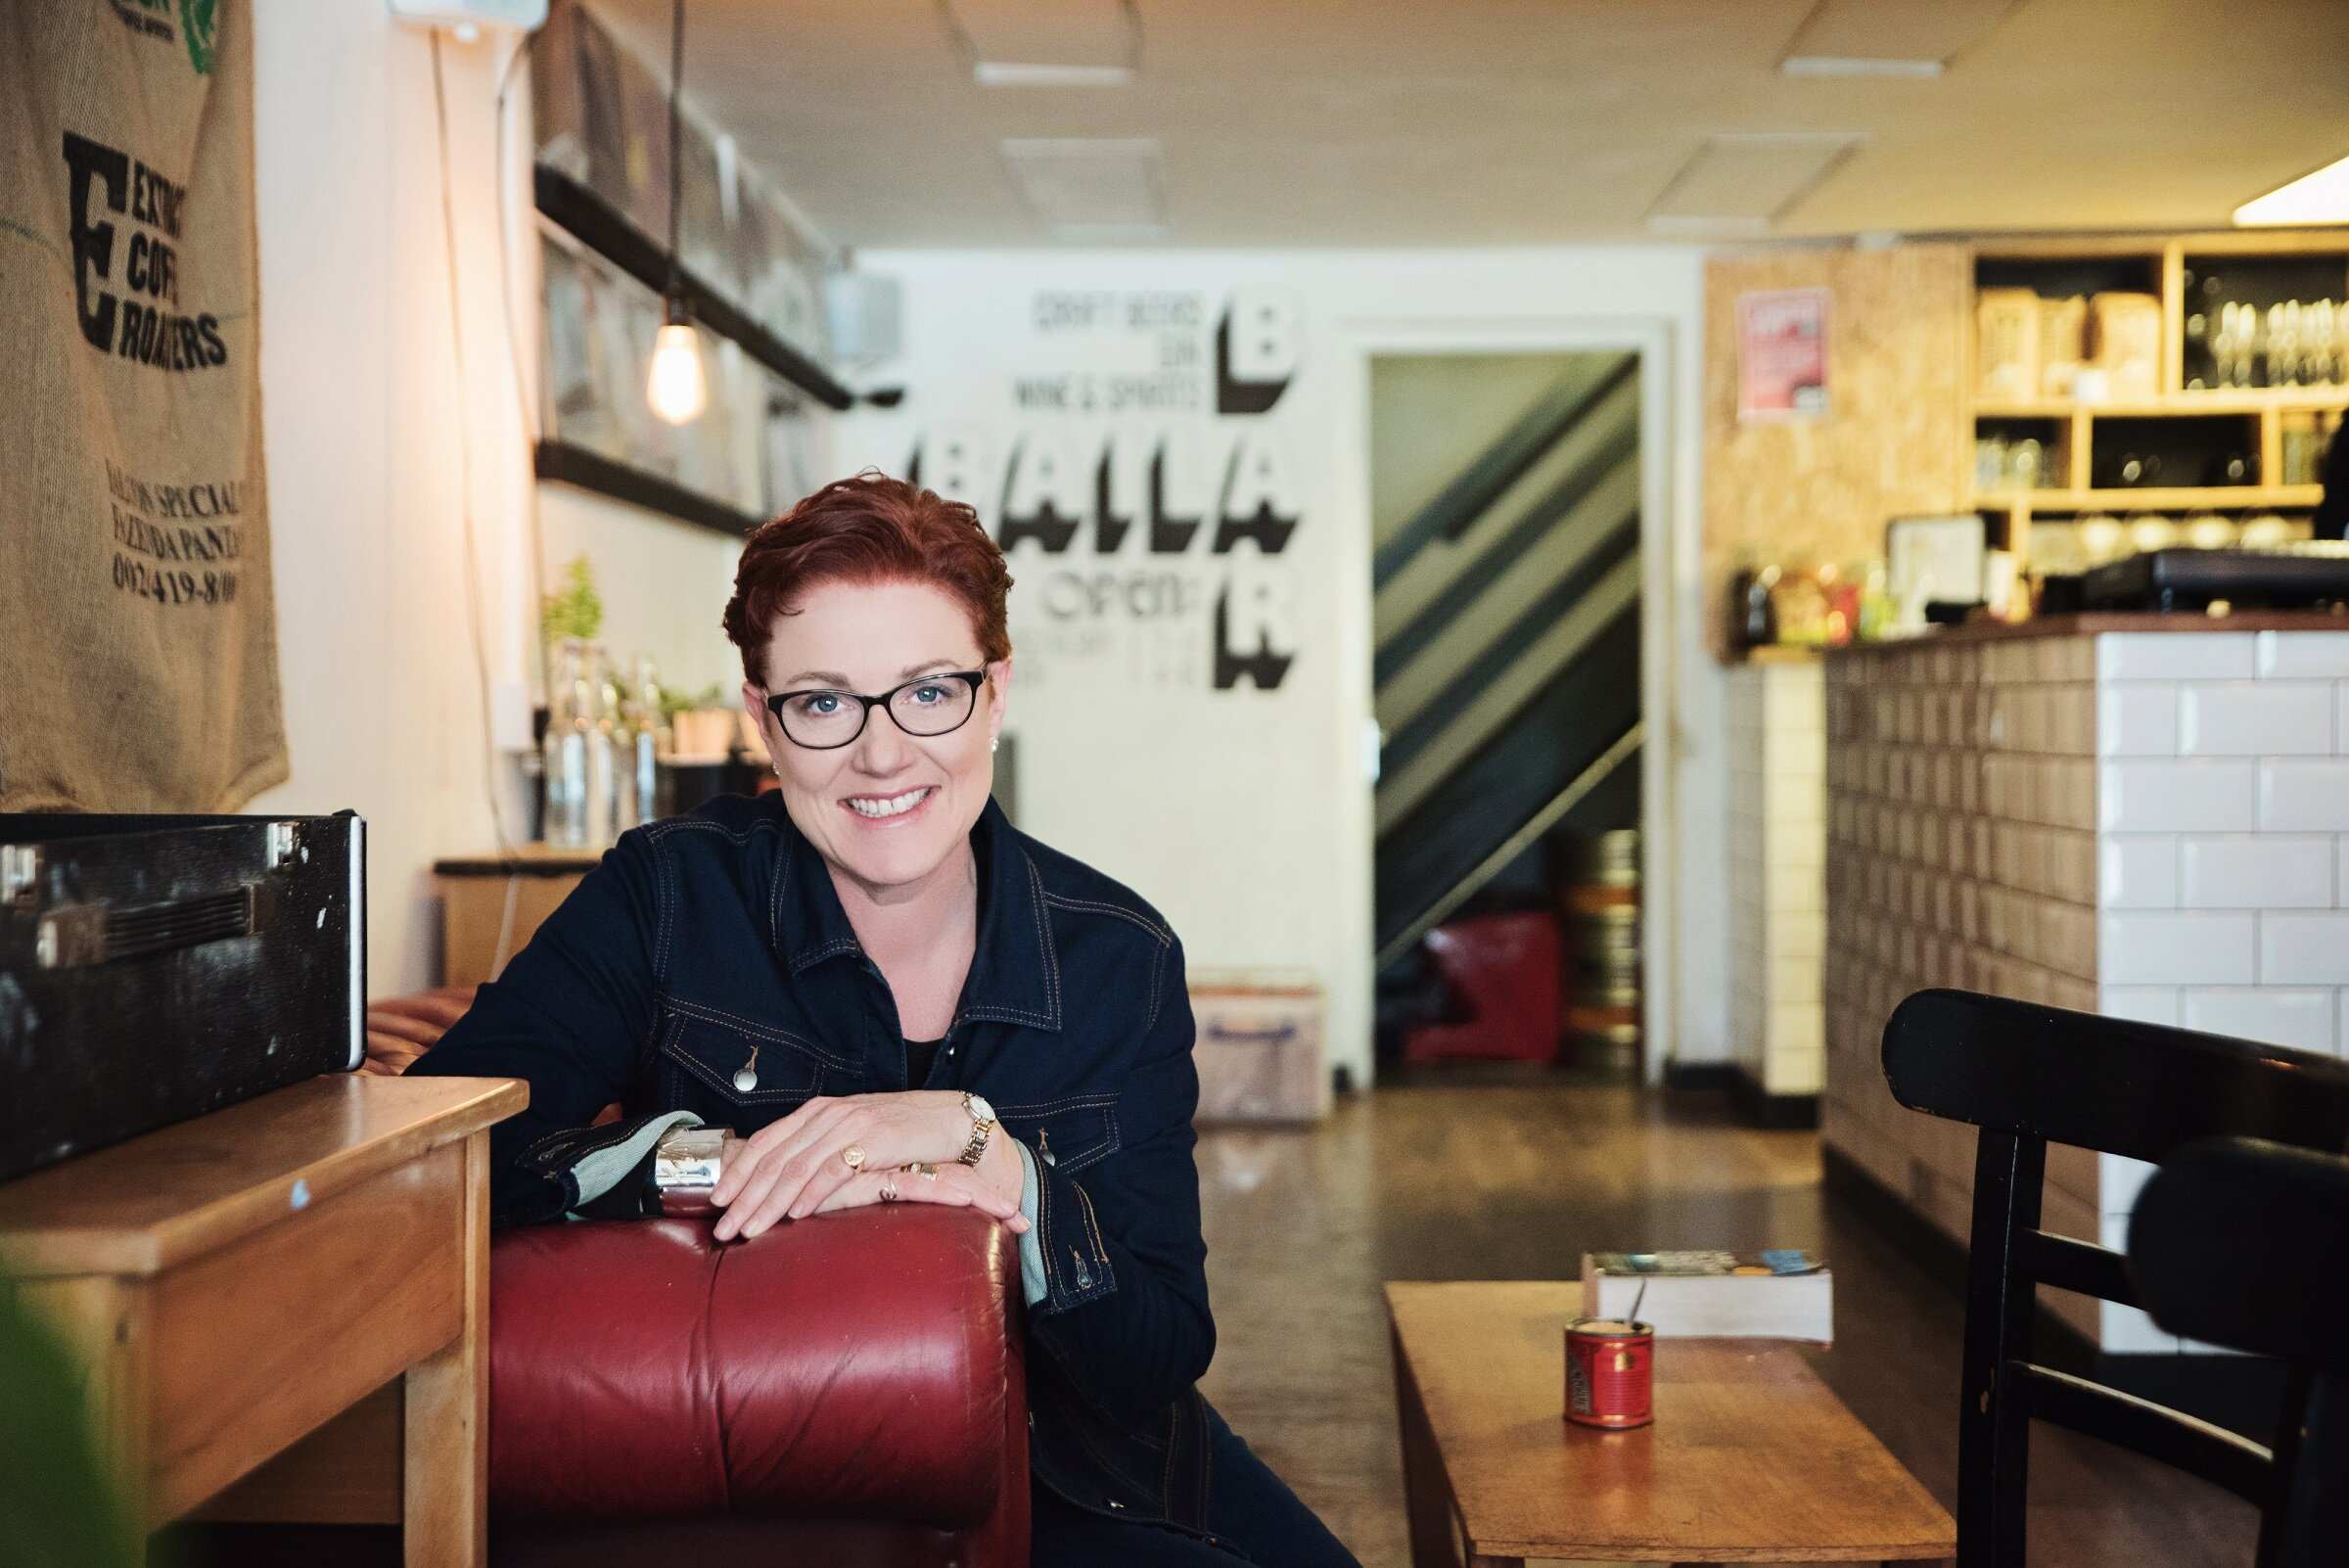 Sara Tye  was frustrated with her agency's inefficiency – so she became obsessed with process. Now, clients are happier, margins are up and life is good.